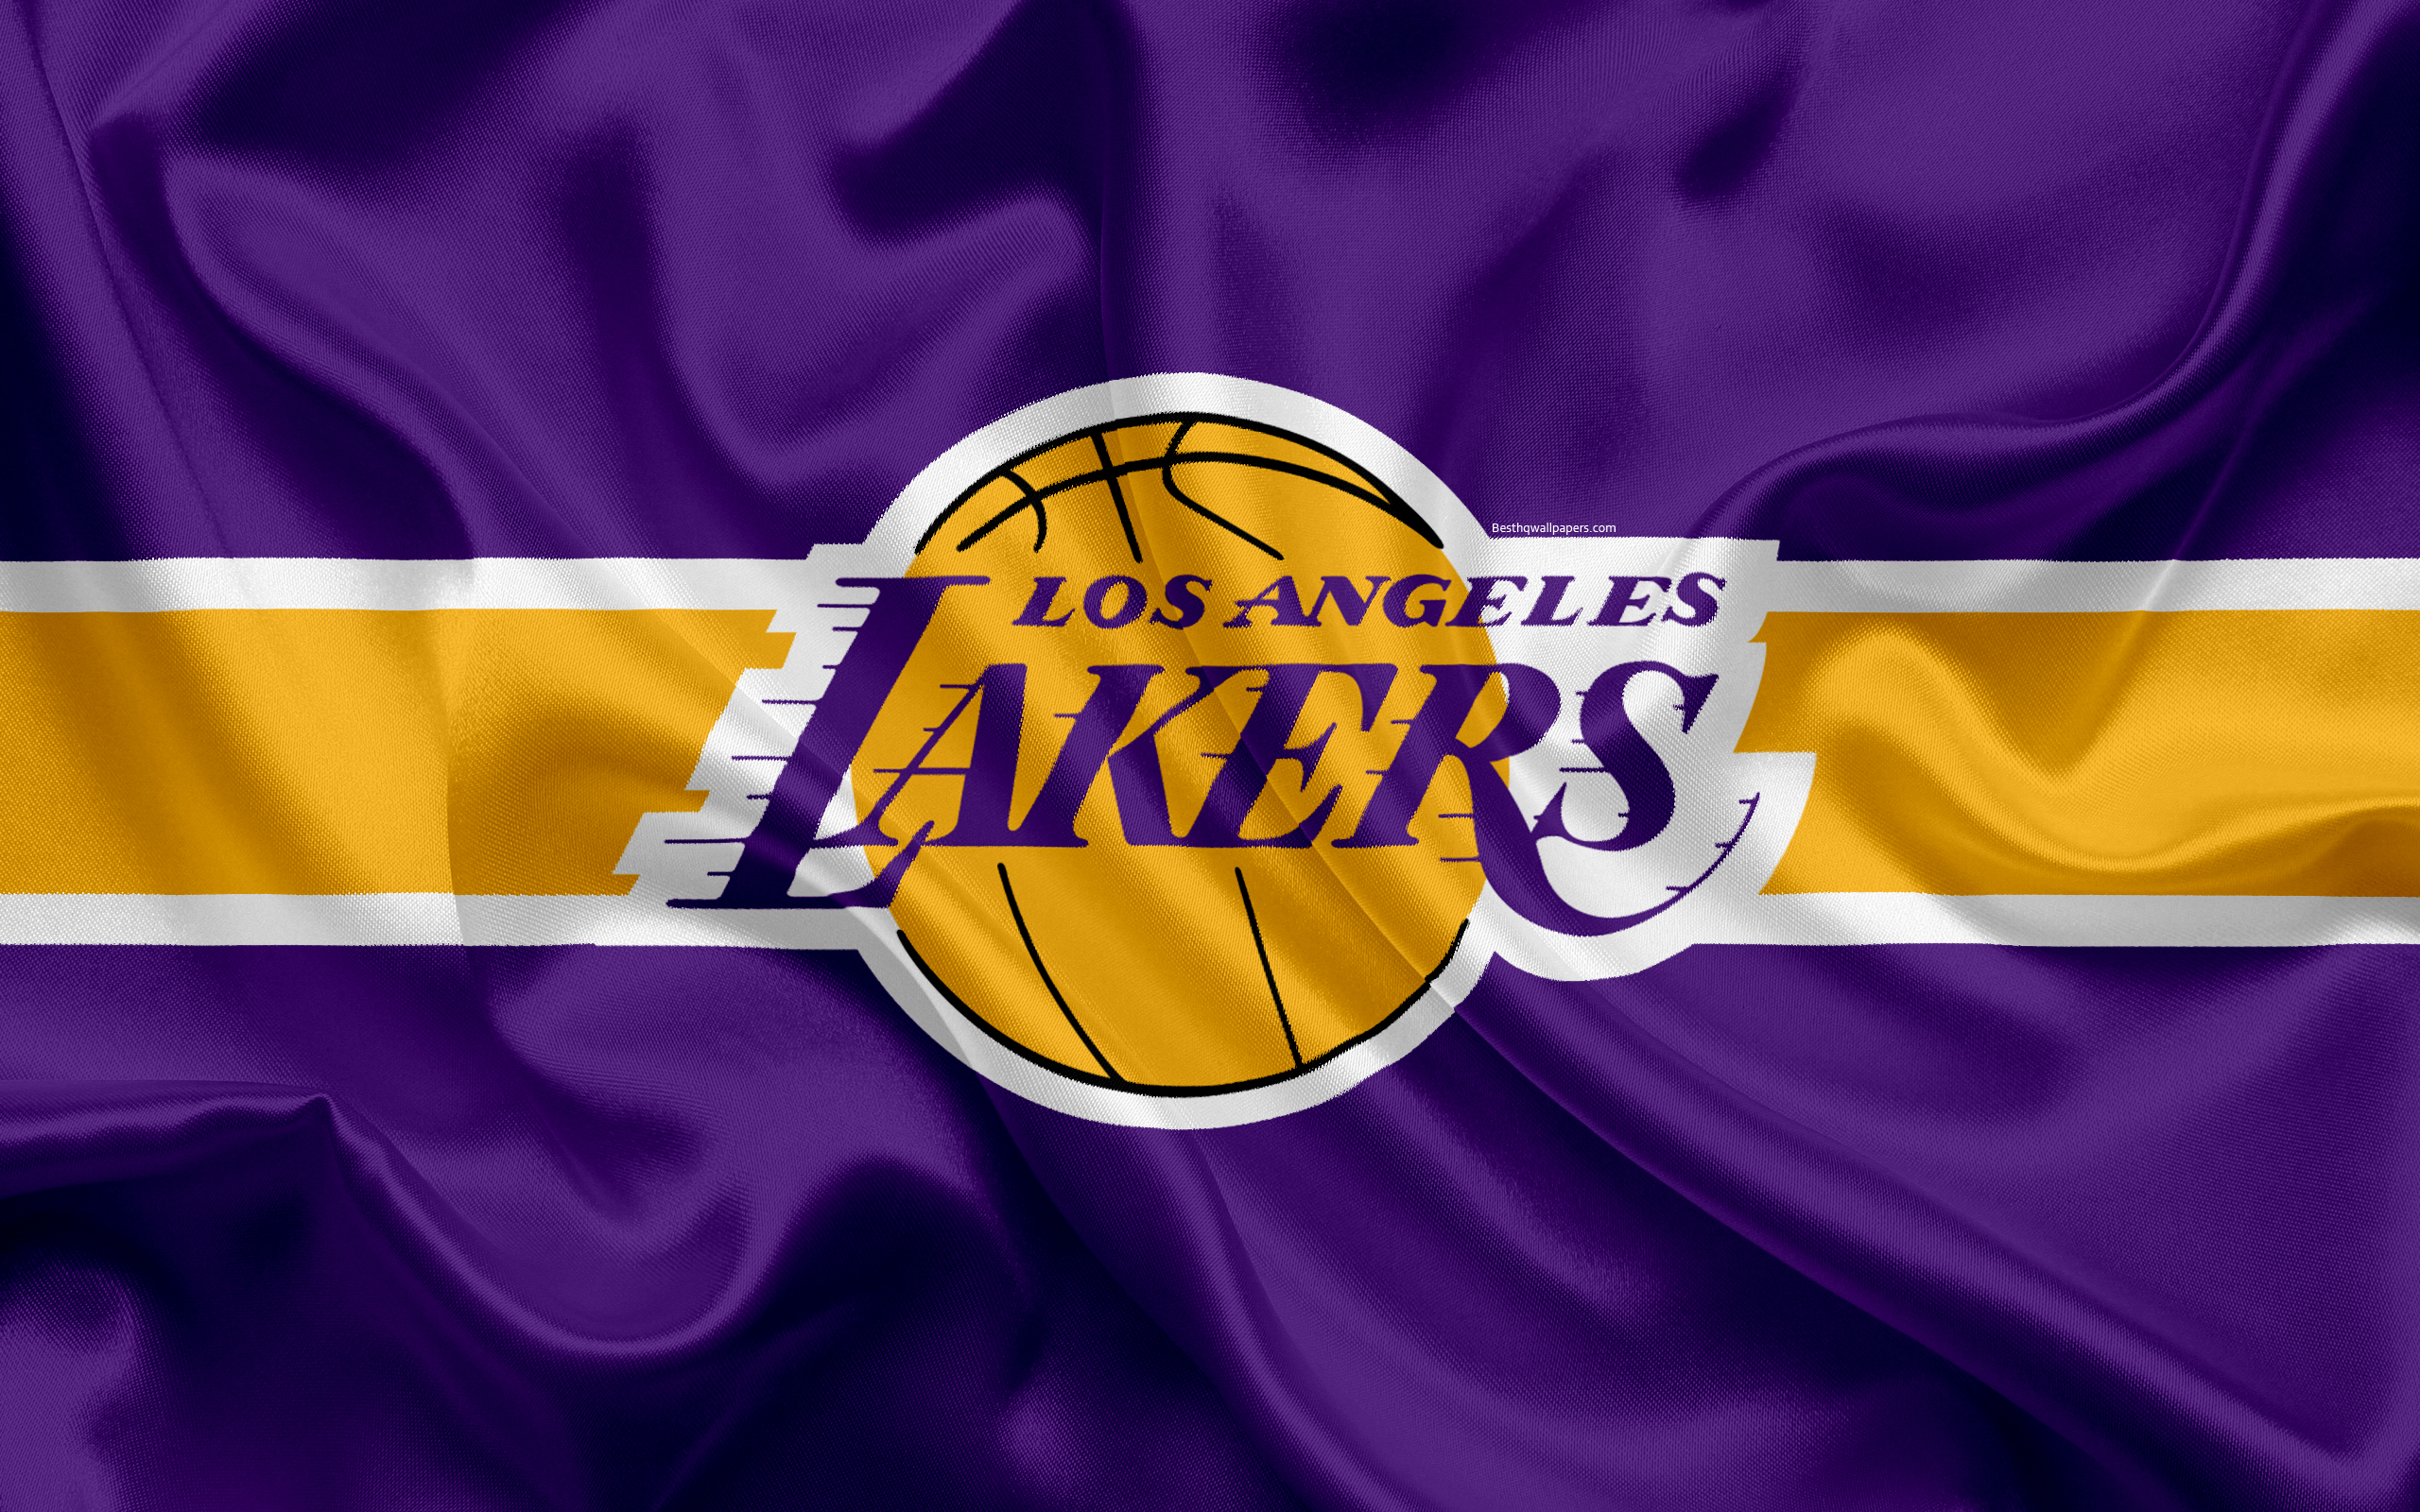 La Lakers Logo Hd Wallpaper Background Image 2560x1600 Id 971316 Wallpaper Abyss